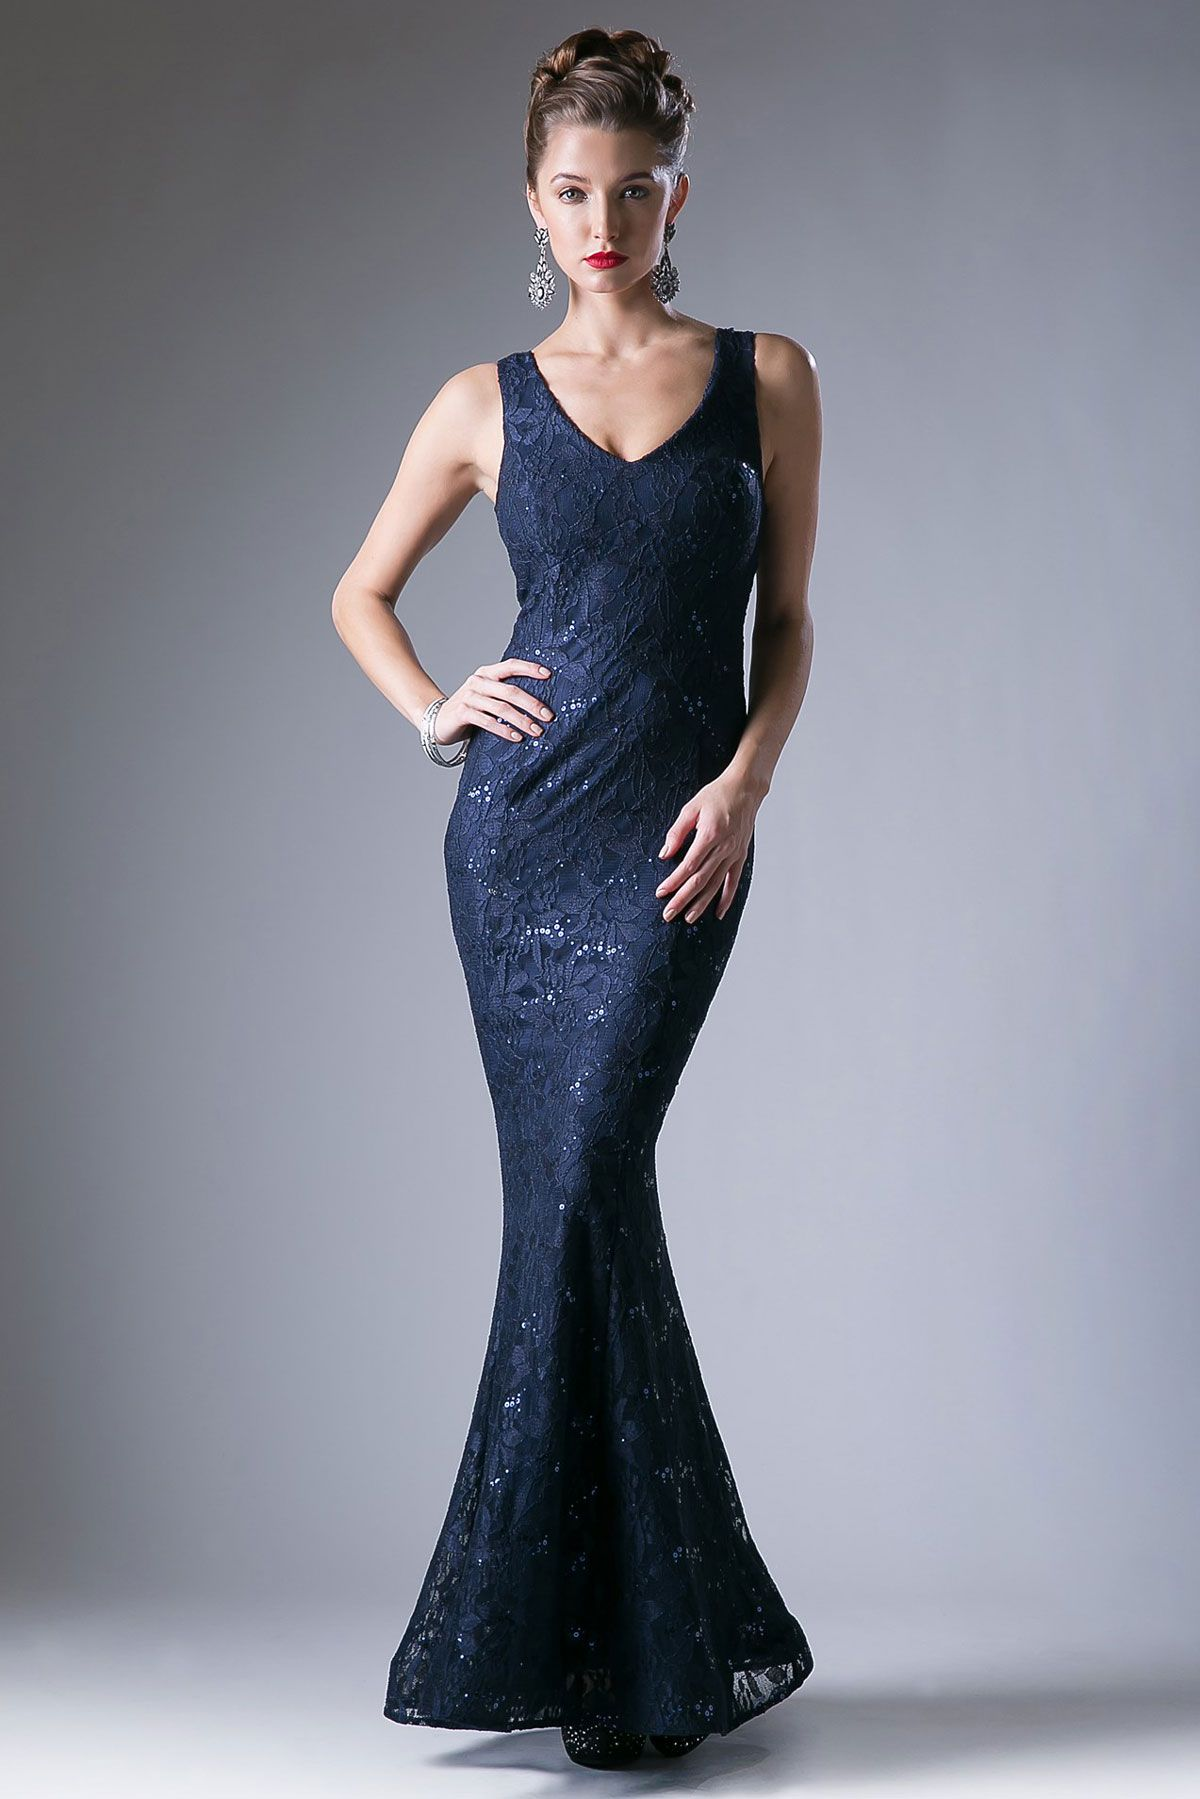 Lace dress open back  Elegant Sheath Shape Lace Evening Dress with Sequin Accent has